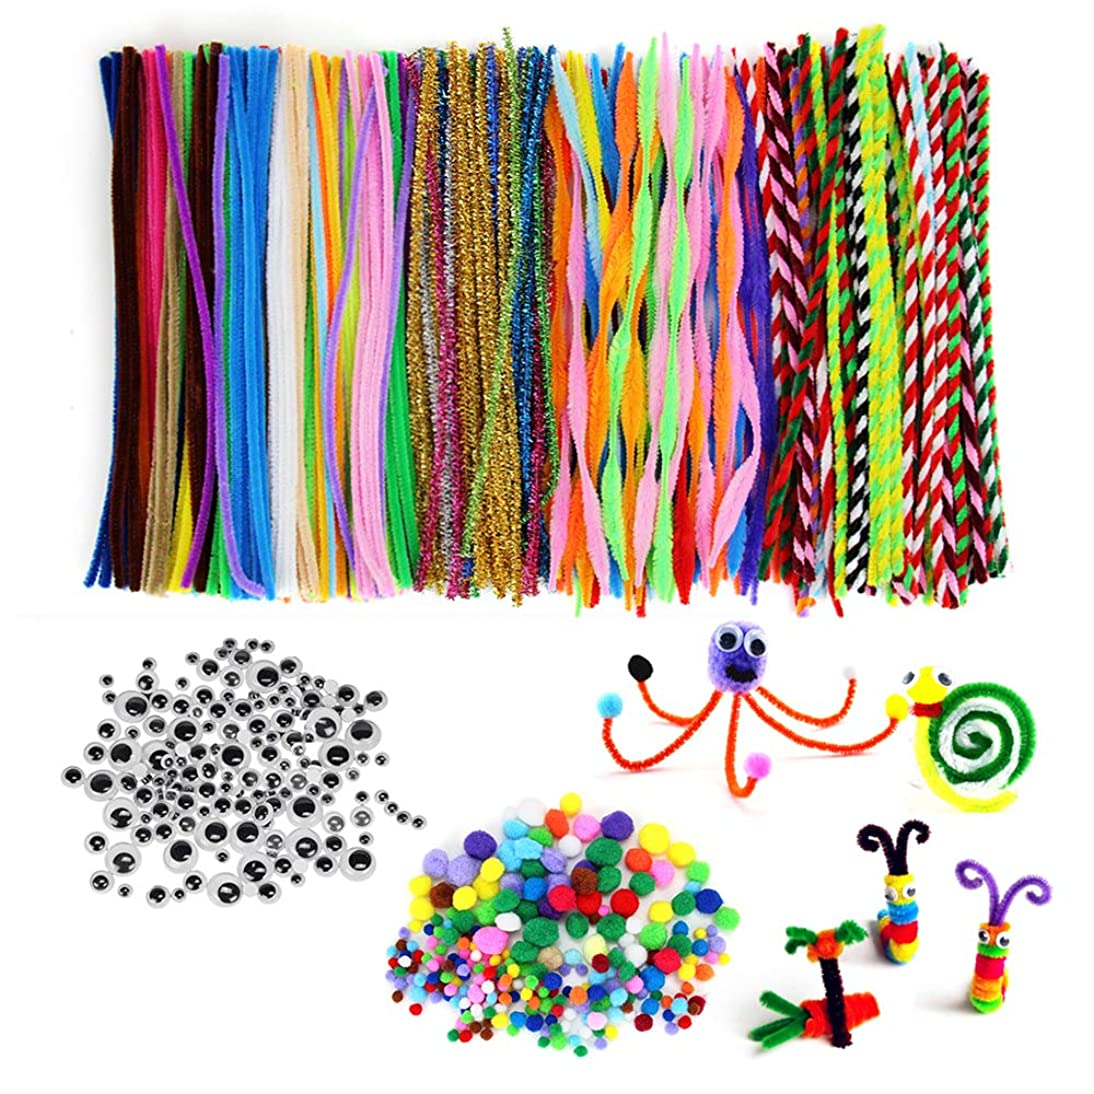 N&T NIETING 950 Pieces Pipe Cleaners Set with Different Style Pipe Cleaners, 3 Size Self-Adhesive Wiggle Googly Eyes, Pony Beads for Craft DIY Art Supplies (950Pcs)